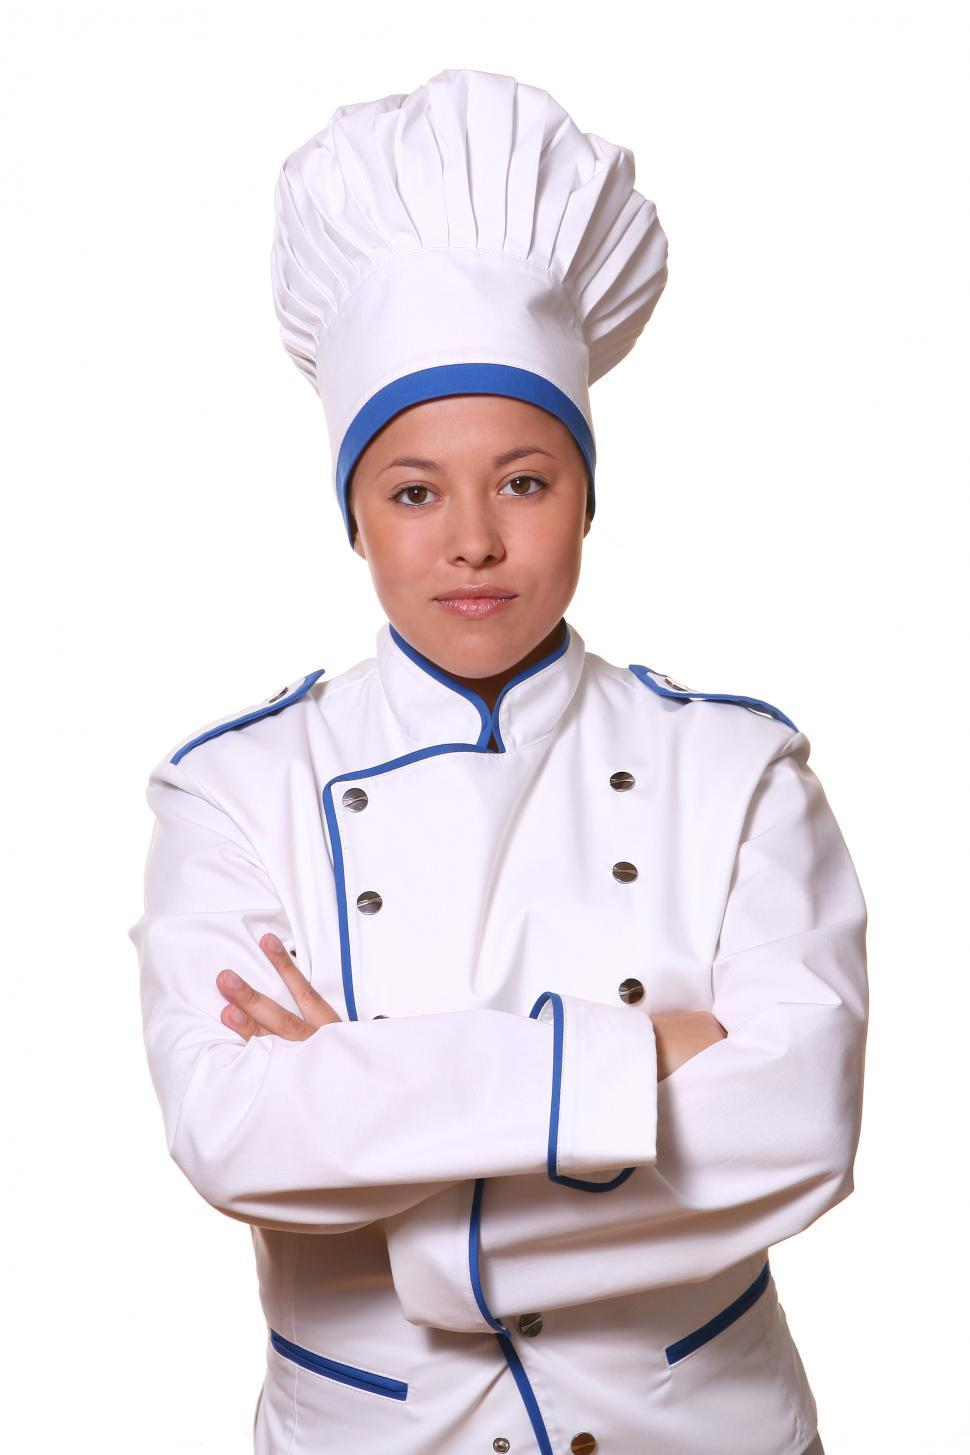 Download Free Stock Photo of Chef standing with arms crossed